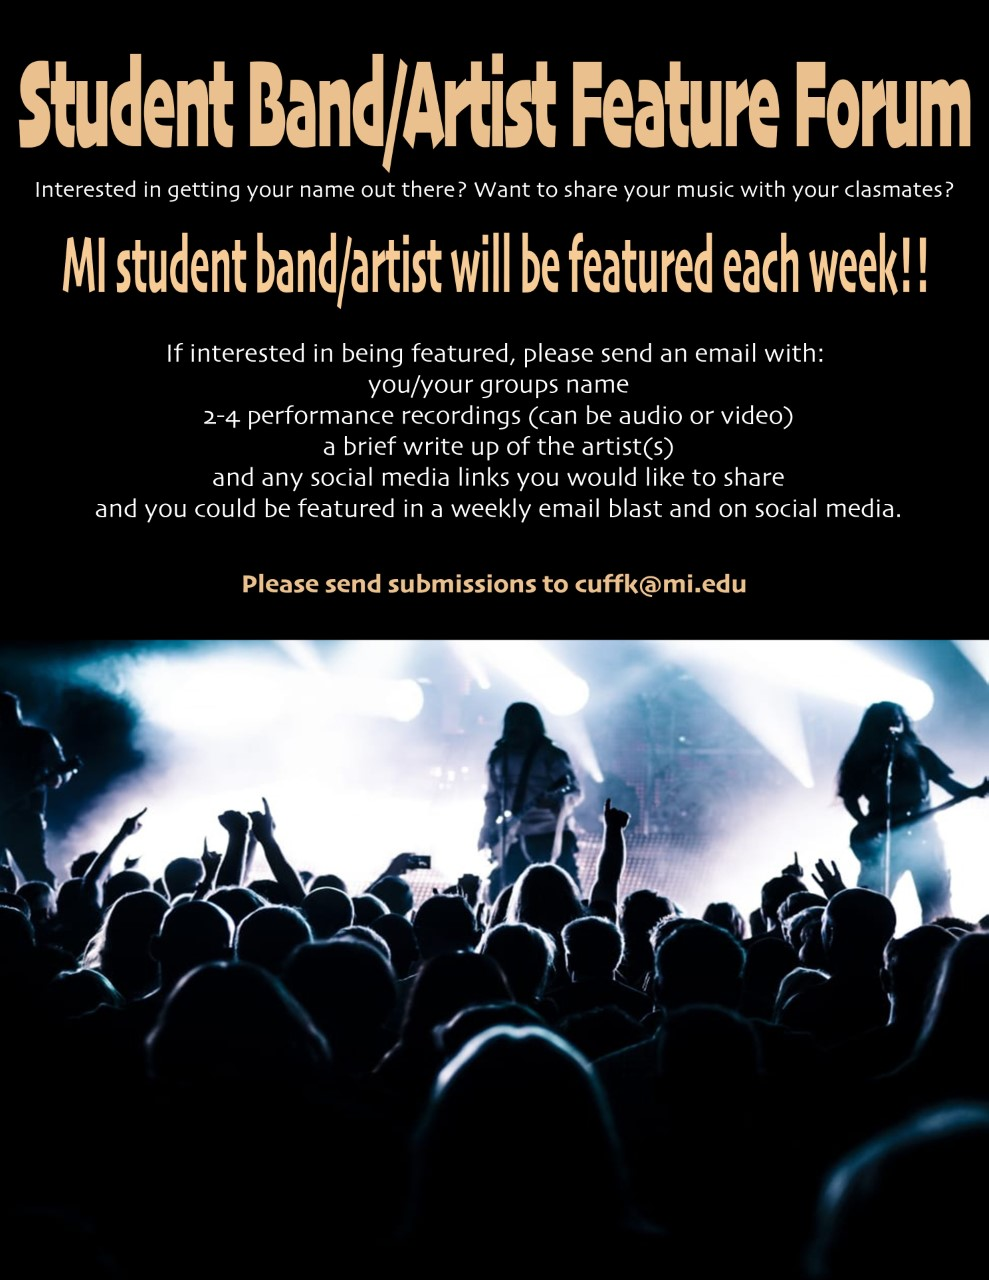 STUDENT BAND/ARTIST FEATURE FORUM